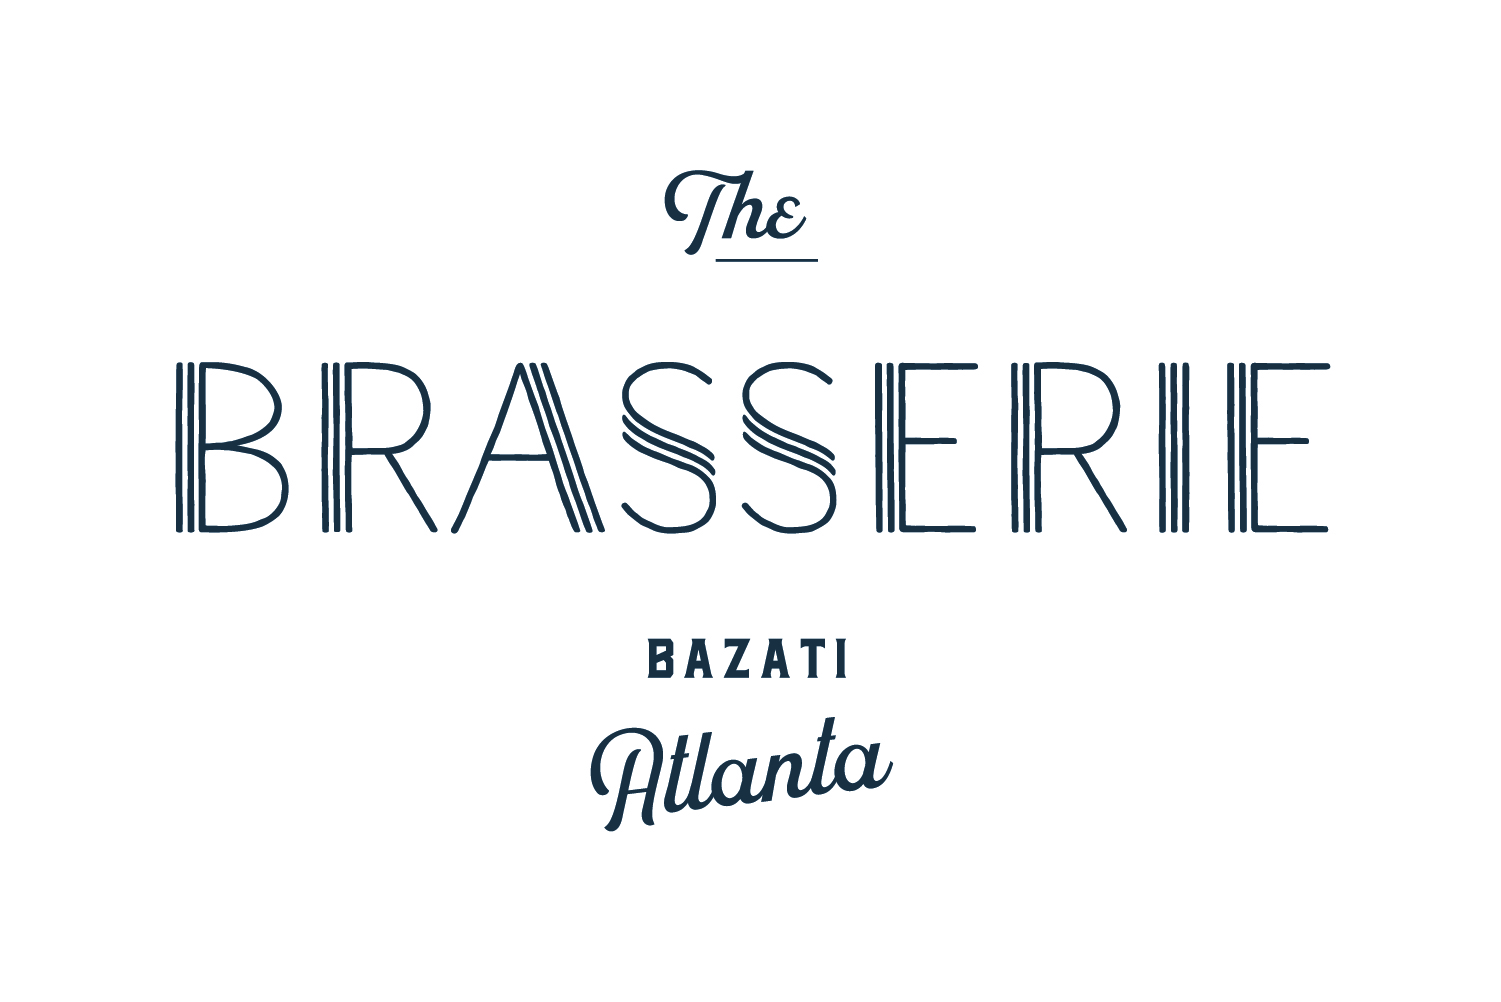 Make a reservation - Downstairs at Bazati Atlanta, The Brasserie offers authentic French cuisine